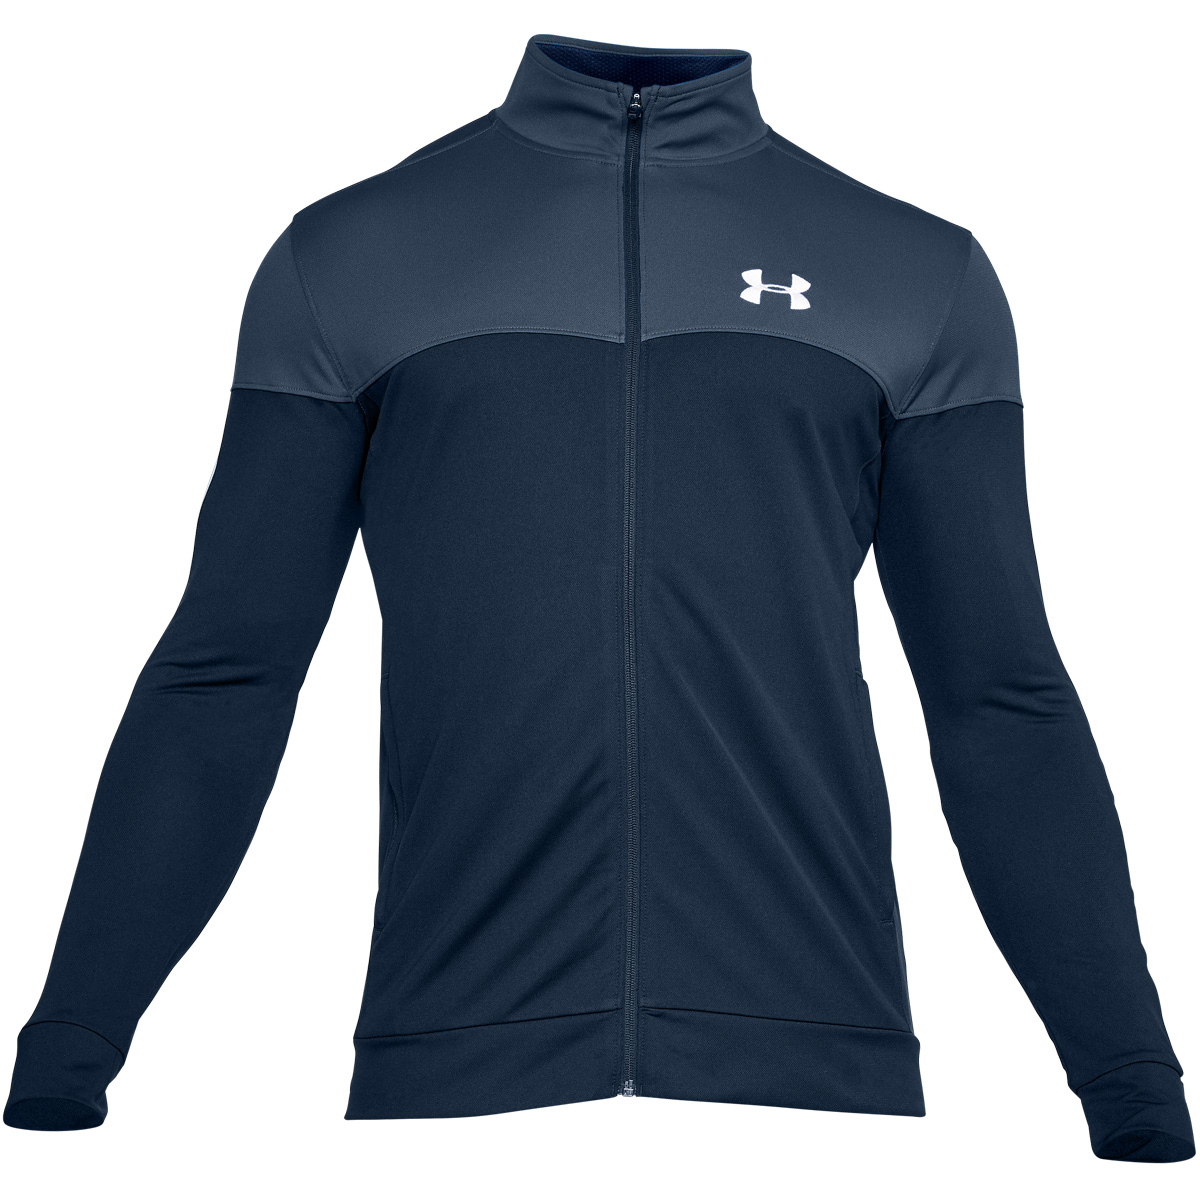 Under-Armour-Mens-2019-Sportstyle-Pique-Sports-Training-Full-Zip-Track-Jacket thumbnail 3